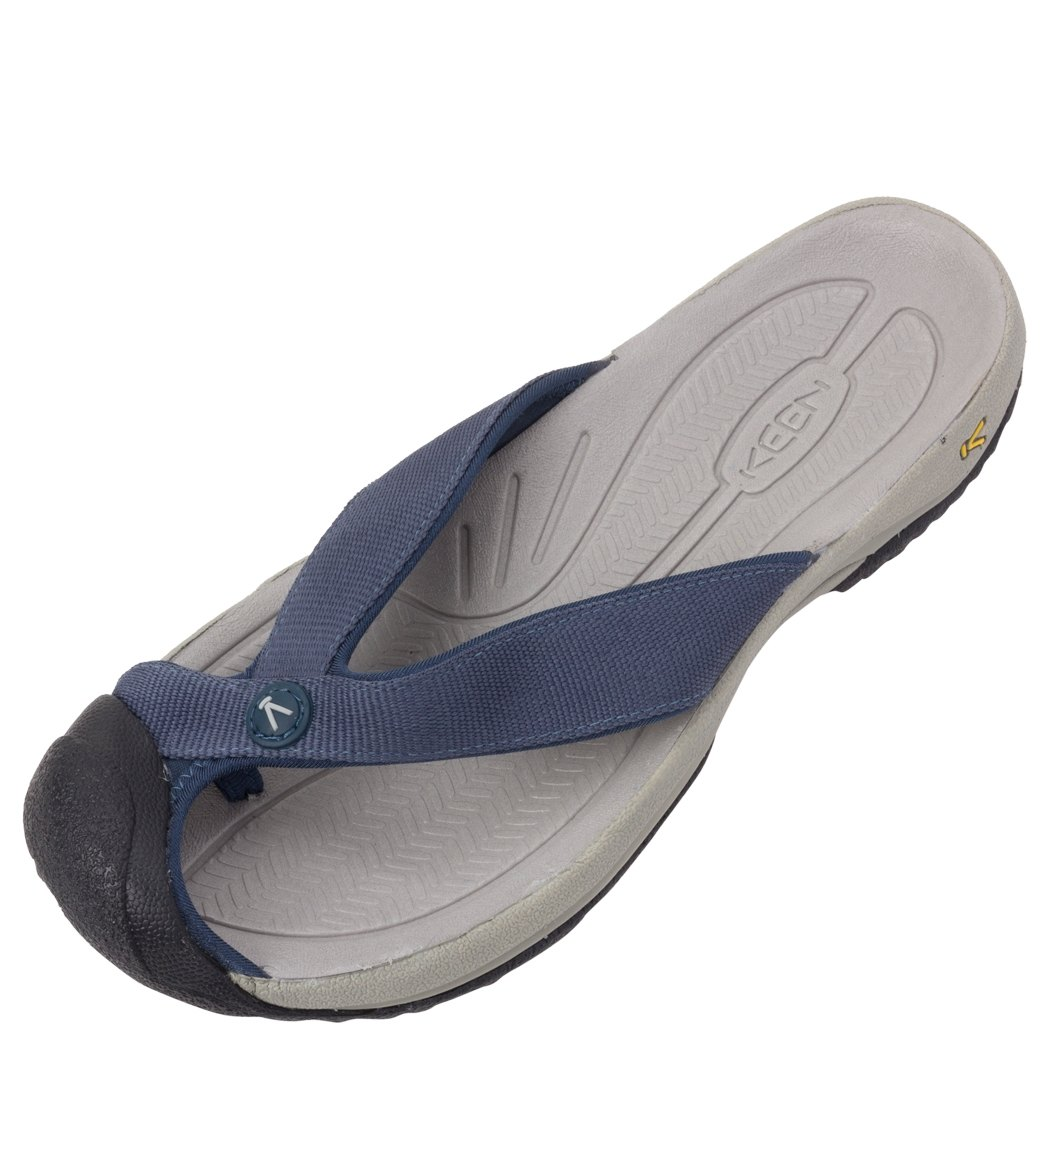 491345e5a55d Keen Men s Waimea H2 Sandal at SwimOutlet.com - Free Shipping